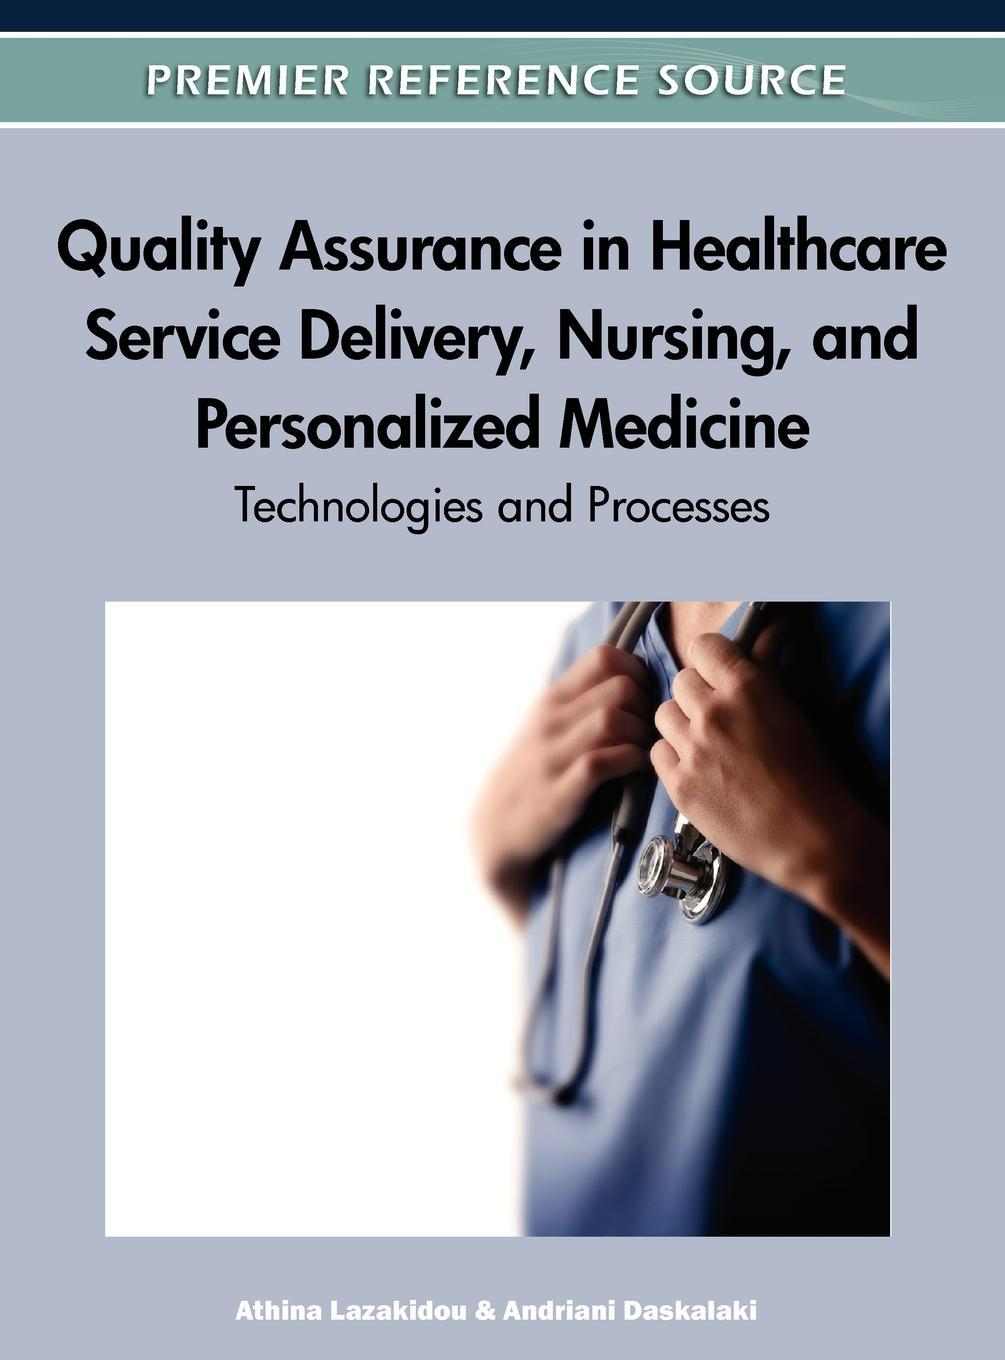 Quality Assurance in Healthcare Service Delivery, Nursing and Personalized Medicine: Technologies and Processes EB9781613501214